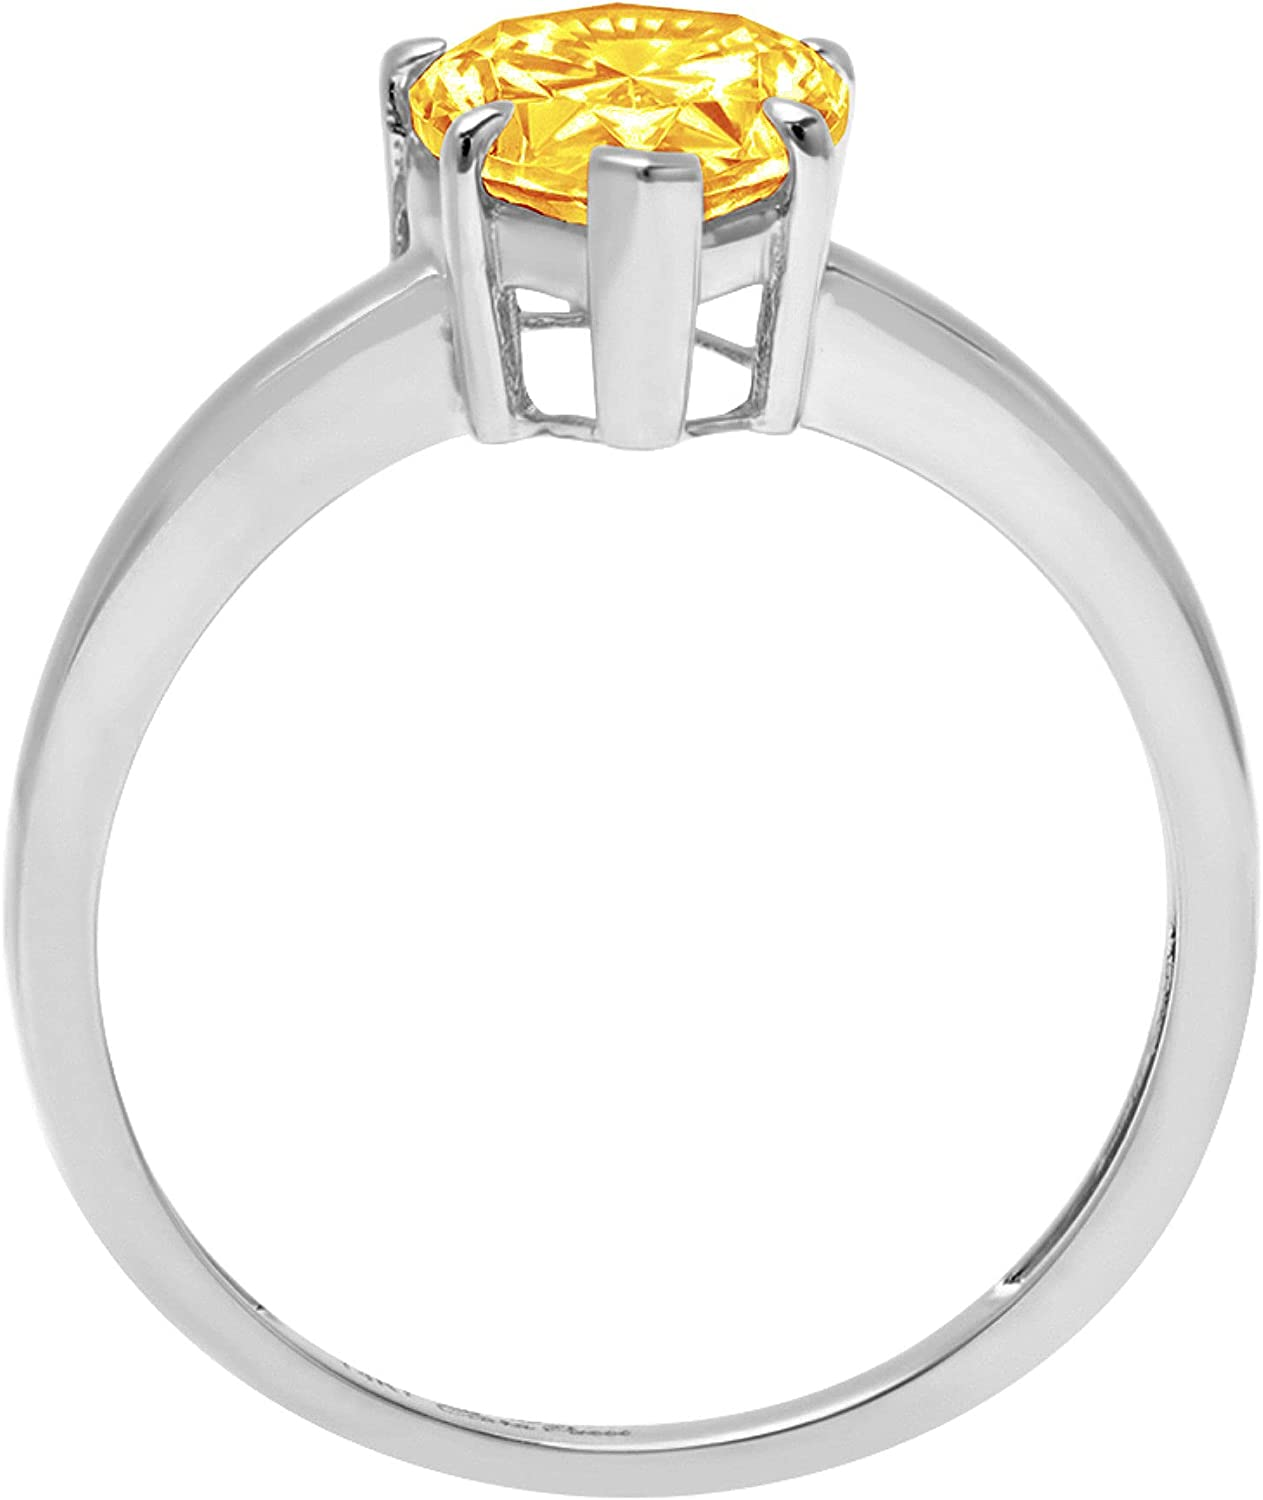 2.4ct Brilliant Pear Cut Solitaire Natural Yellow Citrine Ideal VVS1 Engagement Wedding Bridal Promise Anniversary Ring Solid 14k White Gold for Women